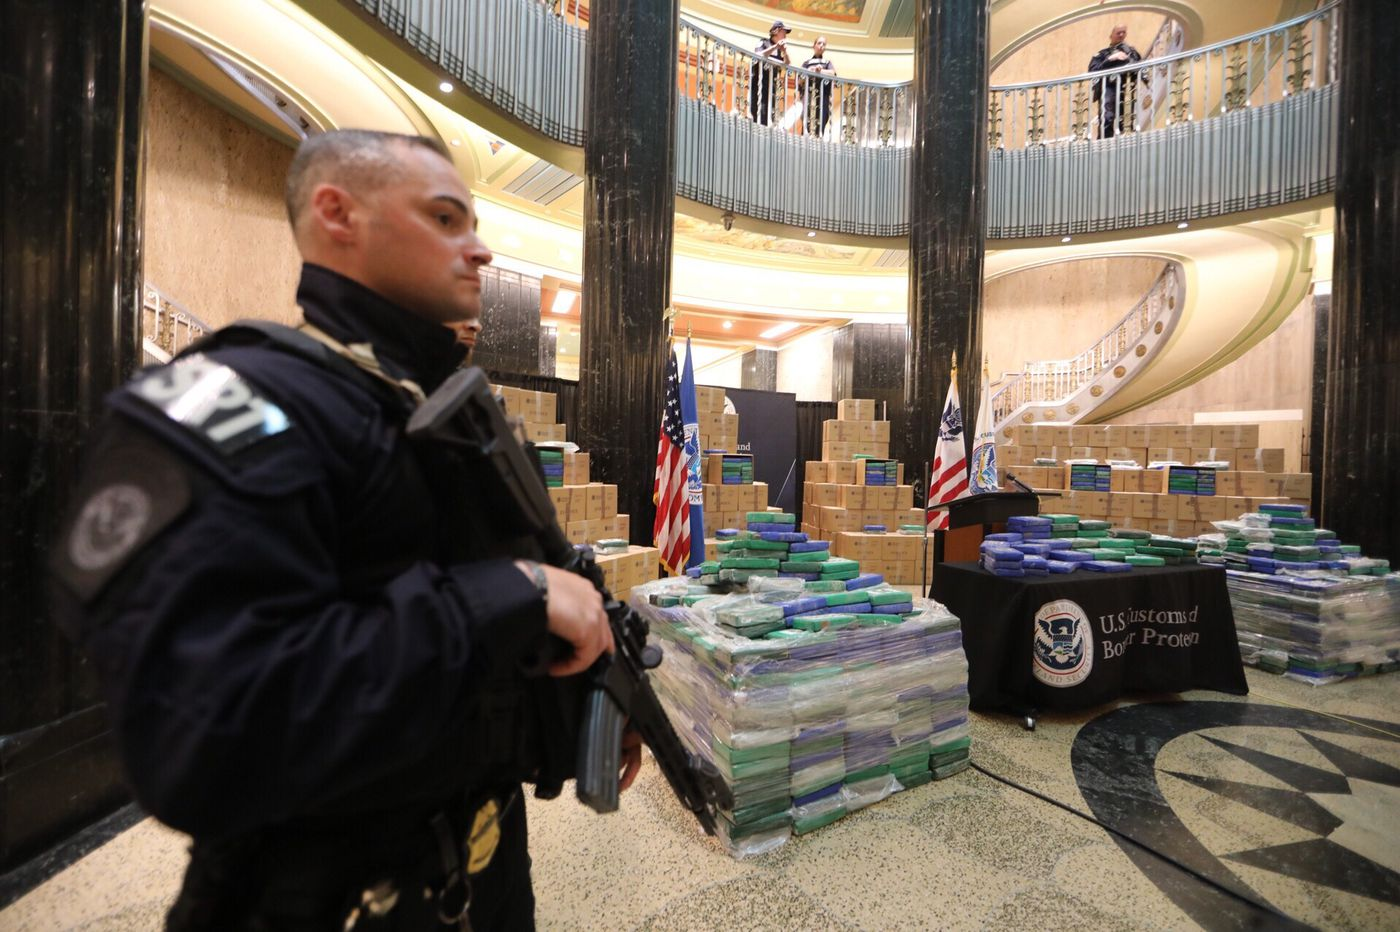 17.5 tons of cocaine: Search yields more as feds probe ship they busted at Port of Philadelphia